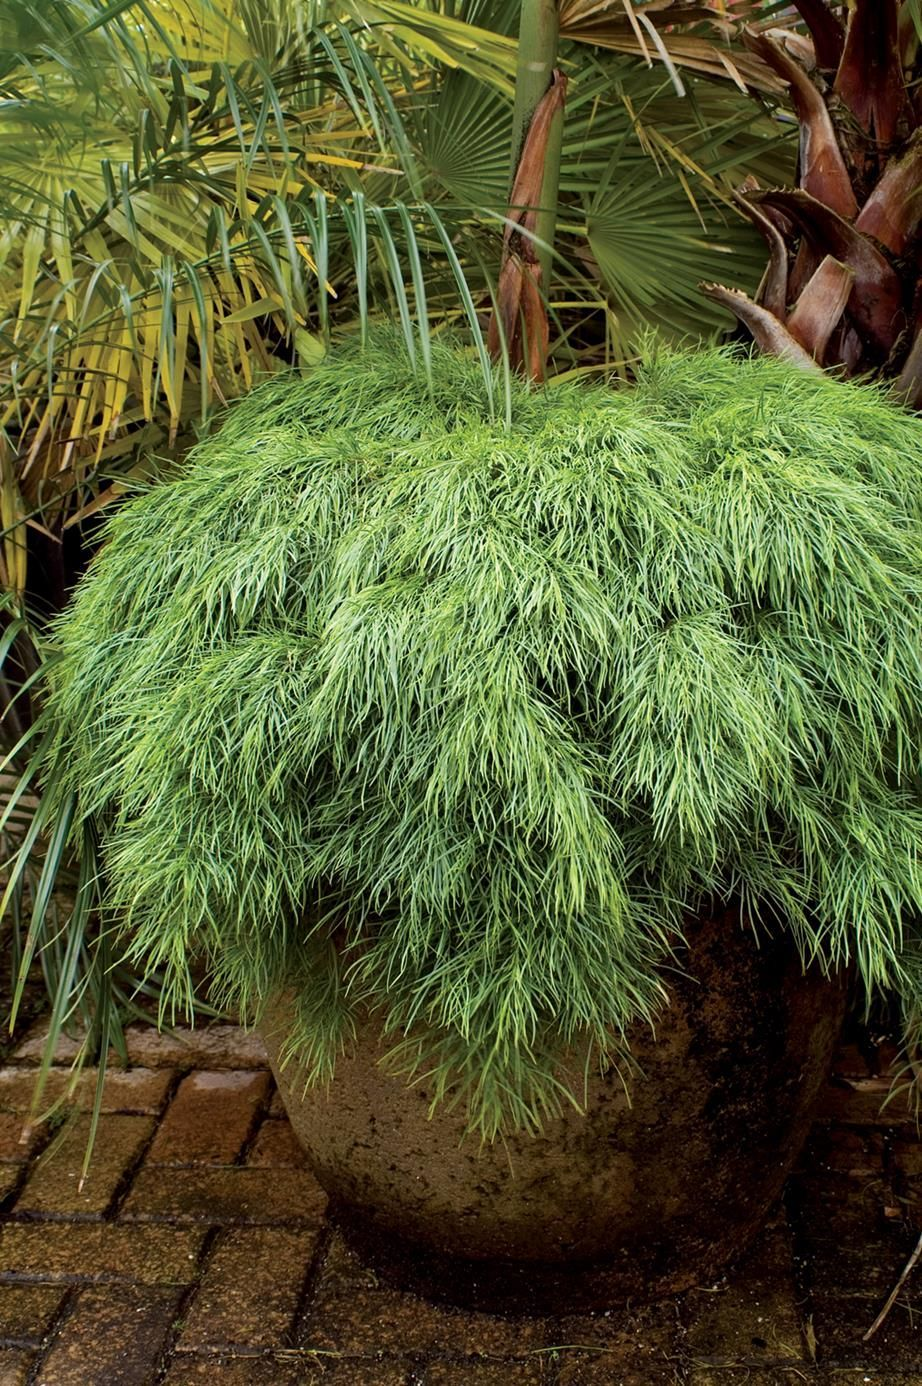 The Acacia Limelight Is Famed For Its Lush Lime Green Foliage And Compact Shape And Is The Perfect Plant If You Want To Add Some Wow Factor To Your Garden 2020